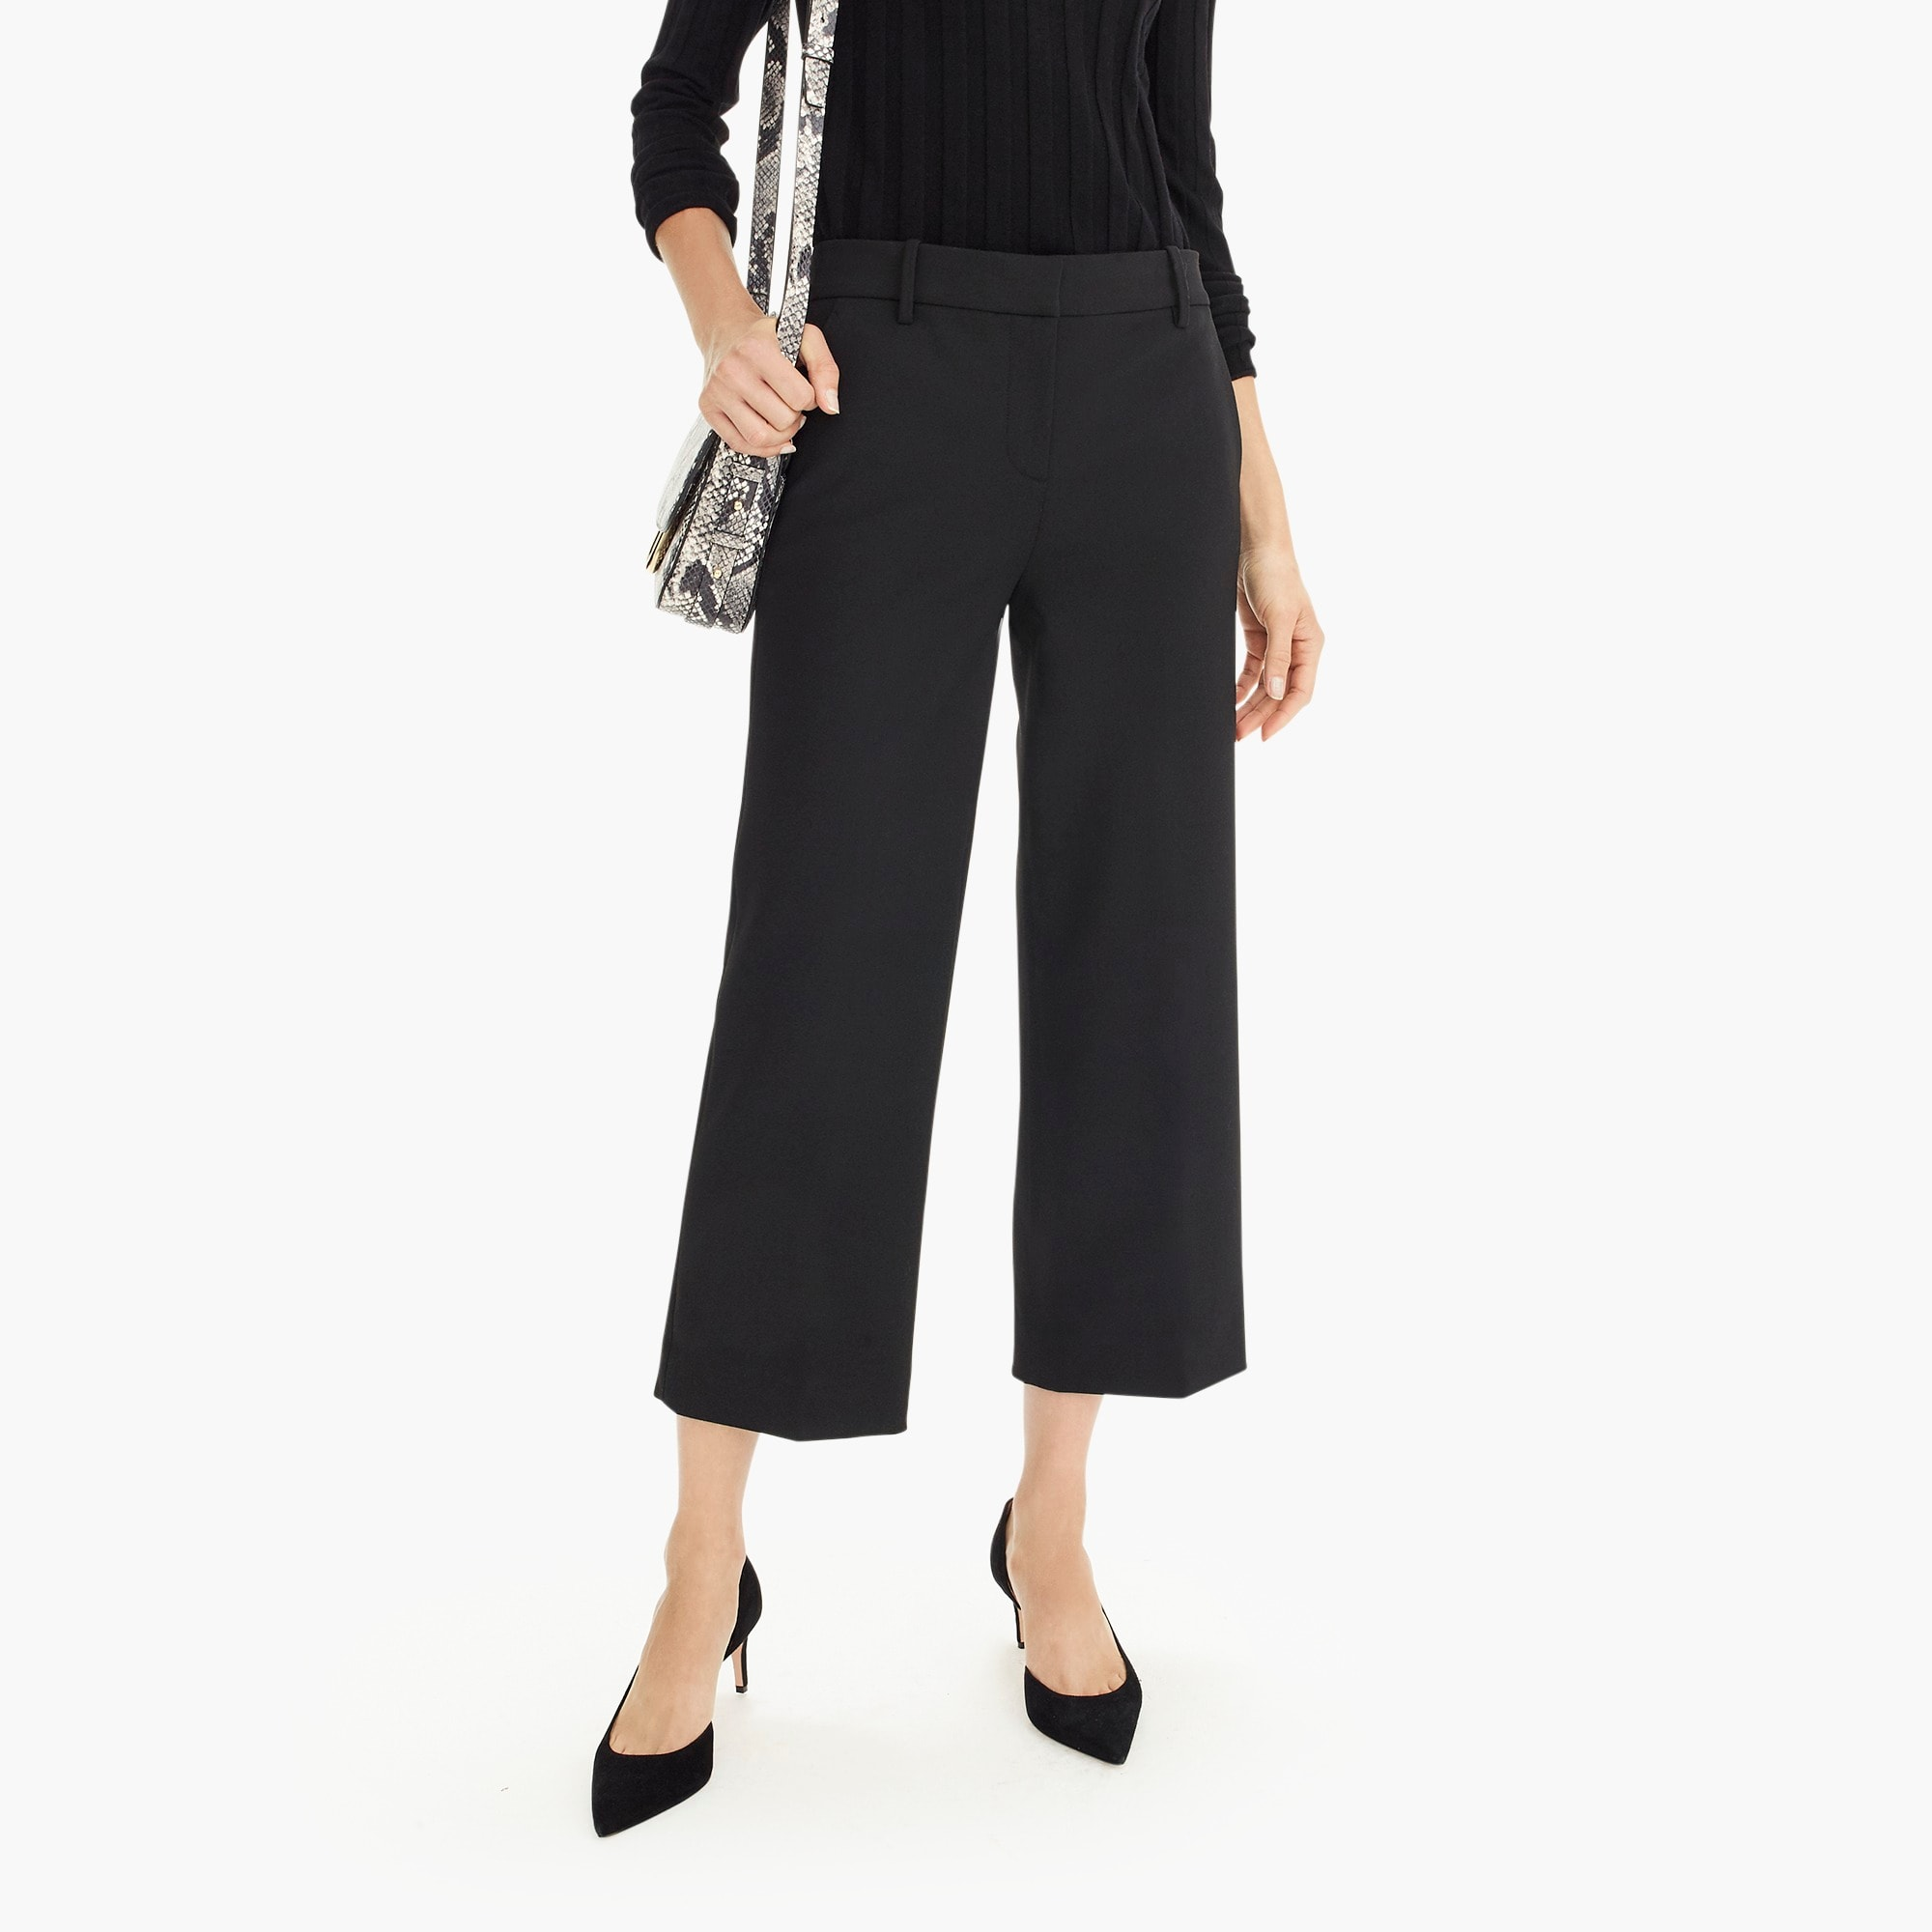 Image 1 for High-rise Peyton wide-leg pant in four-season stretch